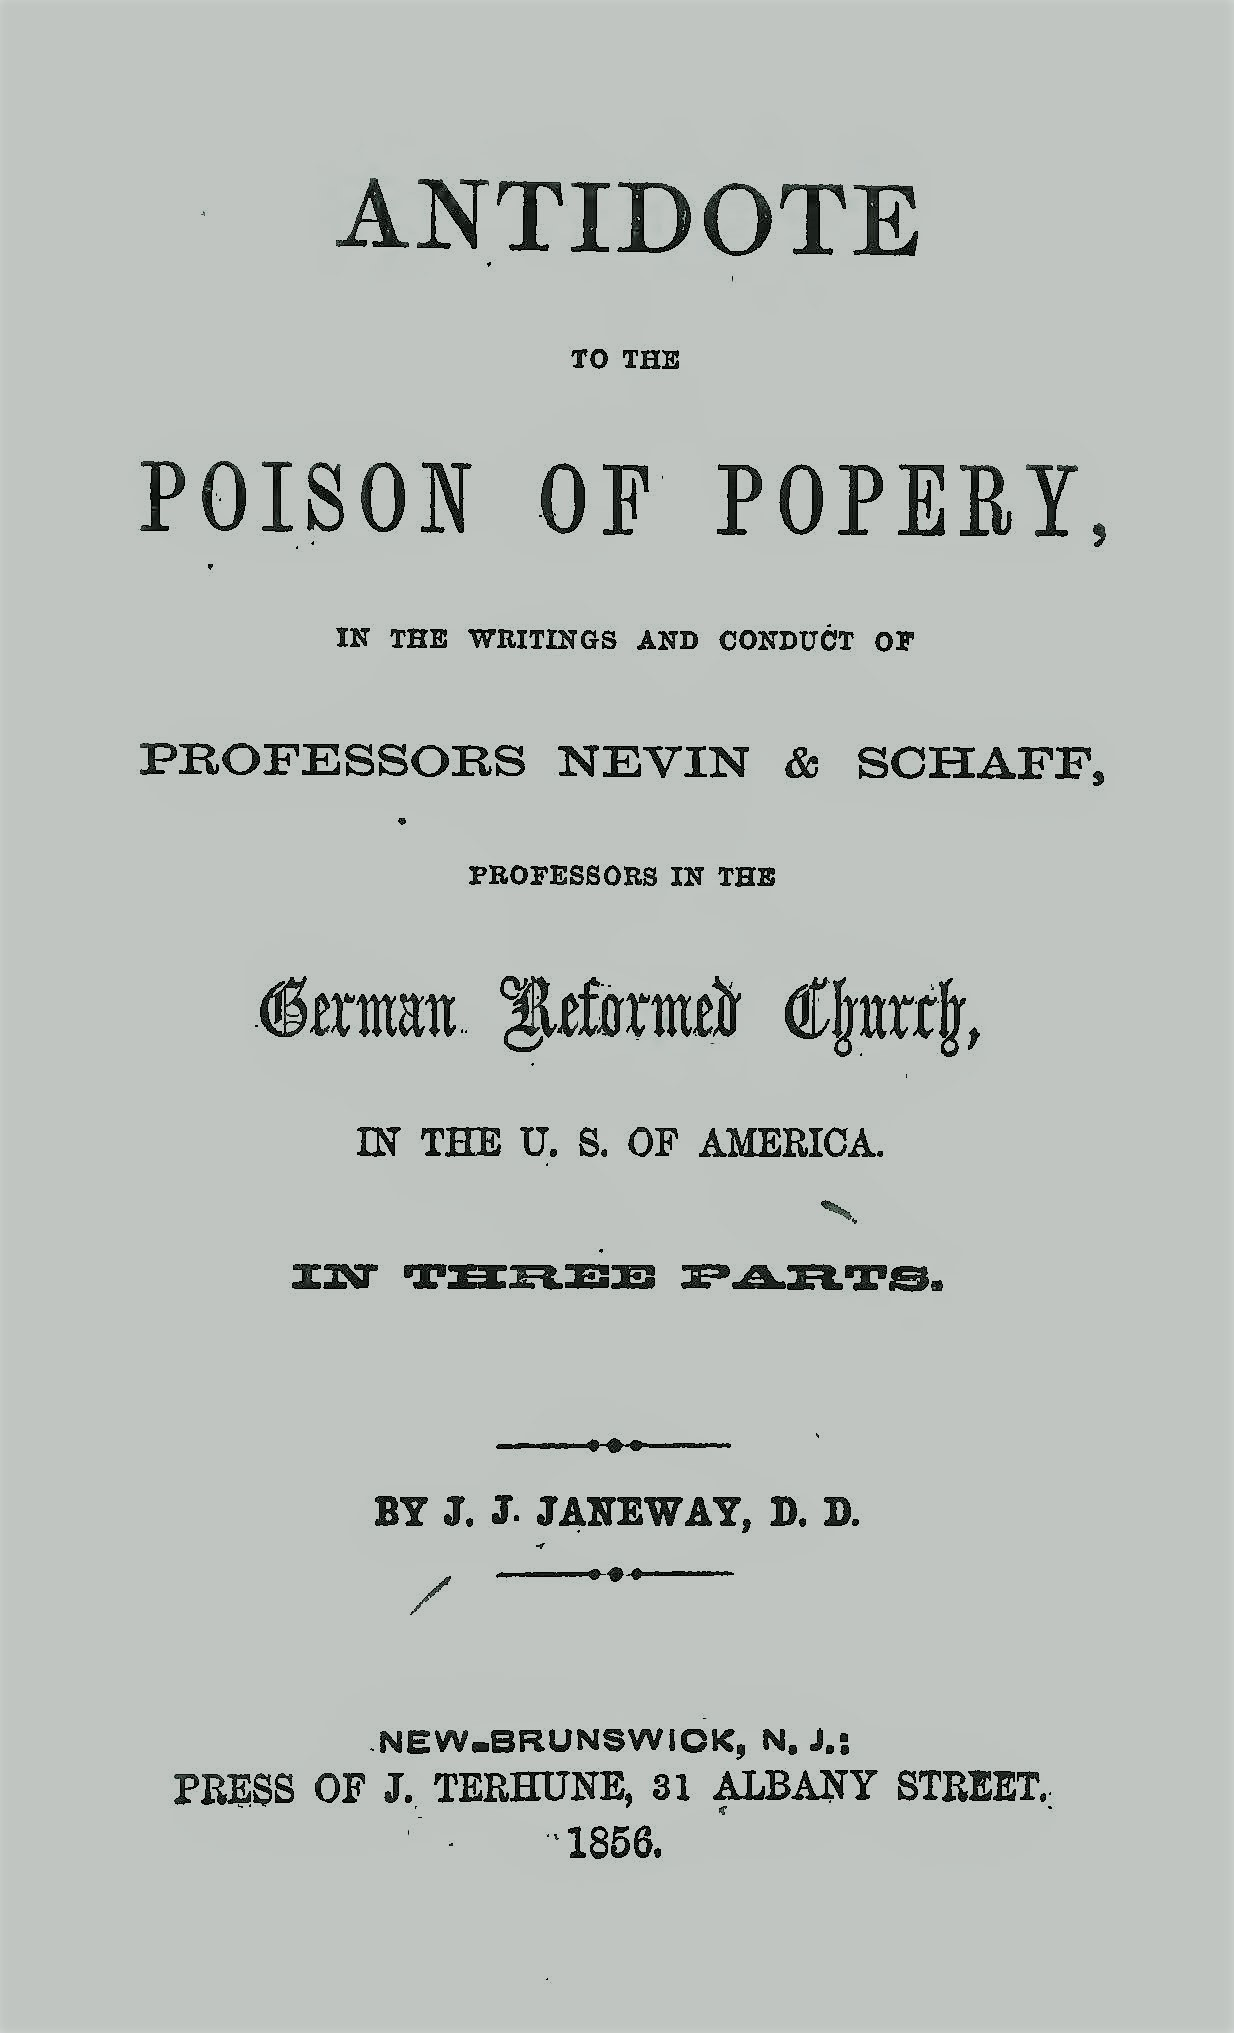 Janeway, Jacob Jones, Antidote to the Poison of Popery in the Writings and Conduct of Professors Nevin and Schaff Title Page.jpg